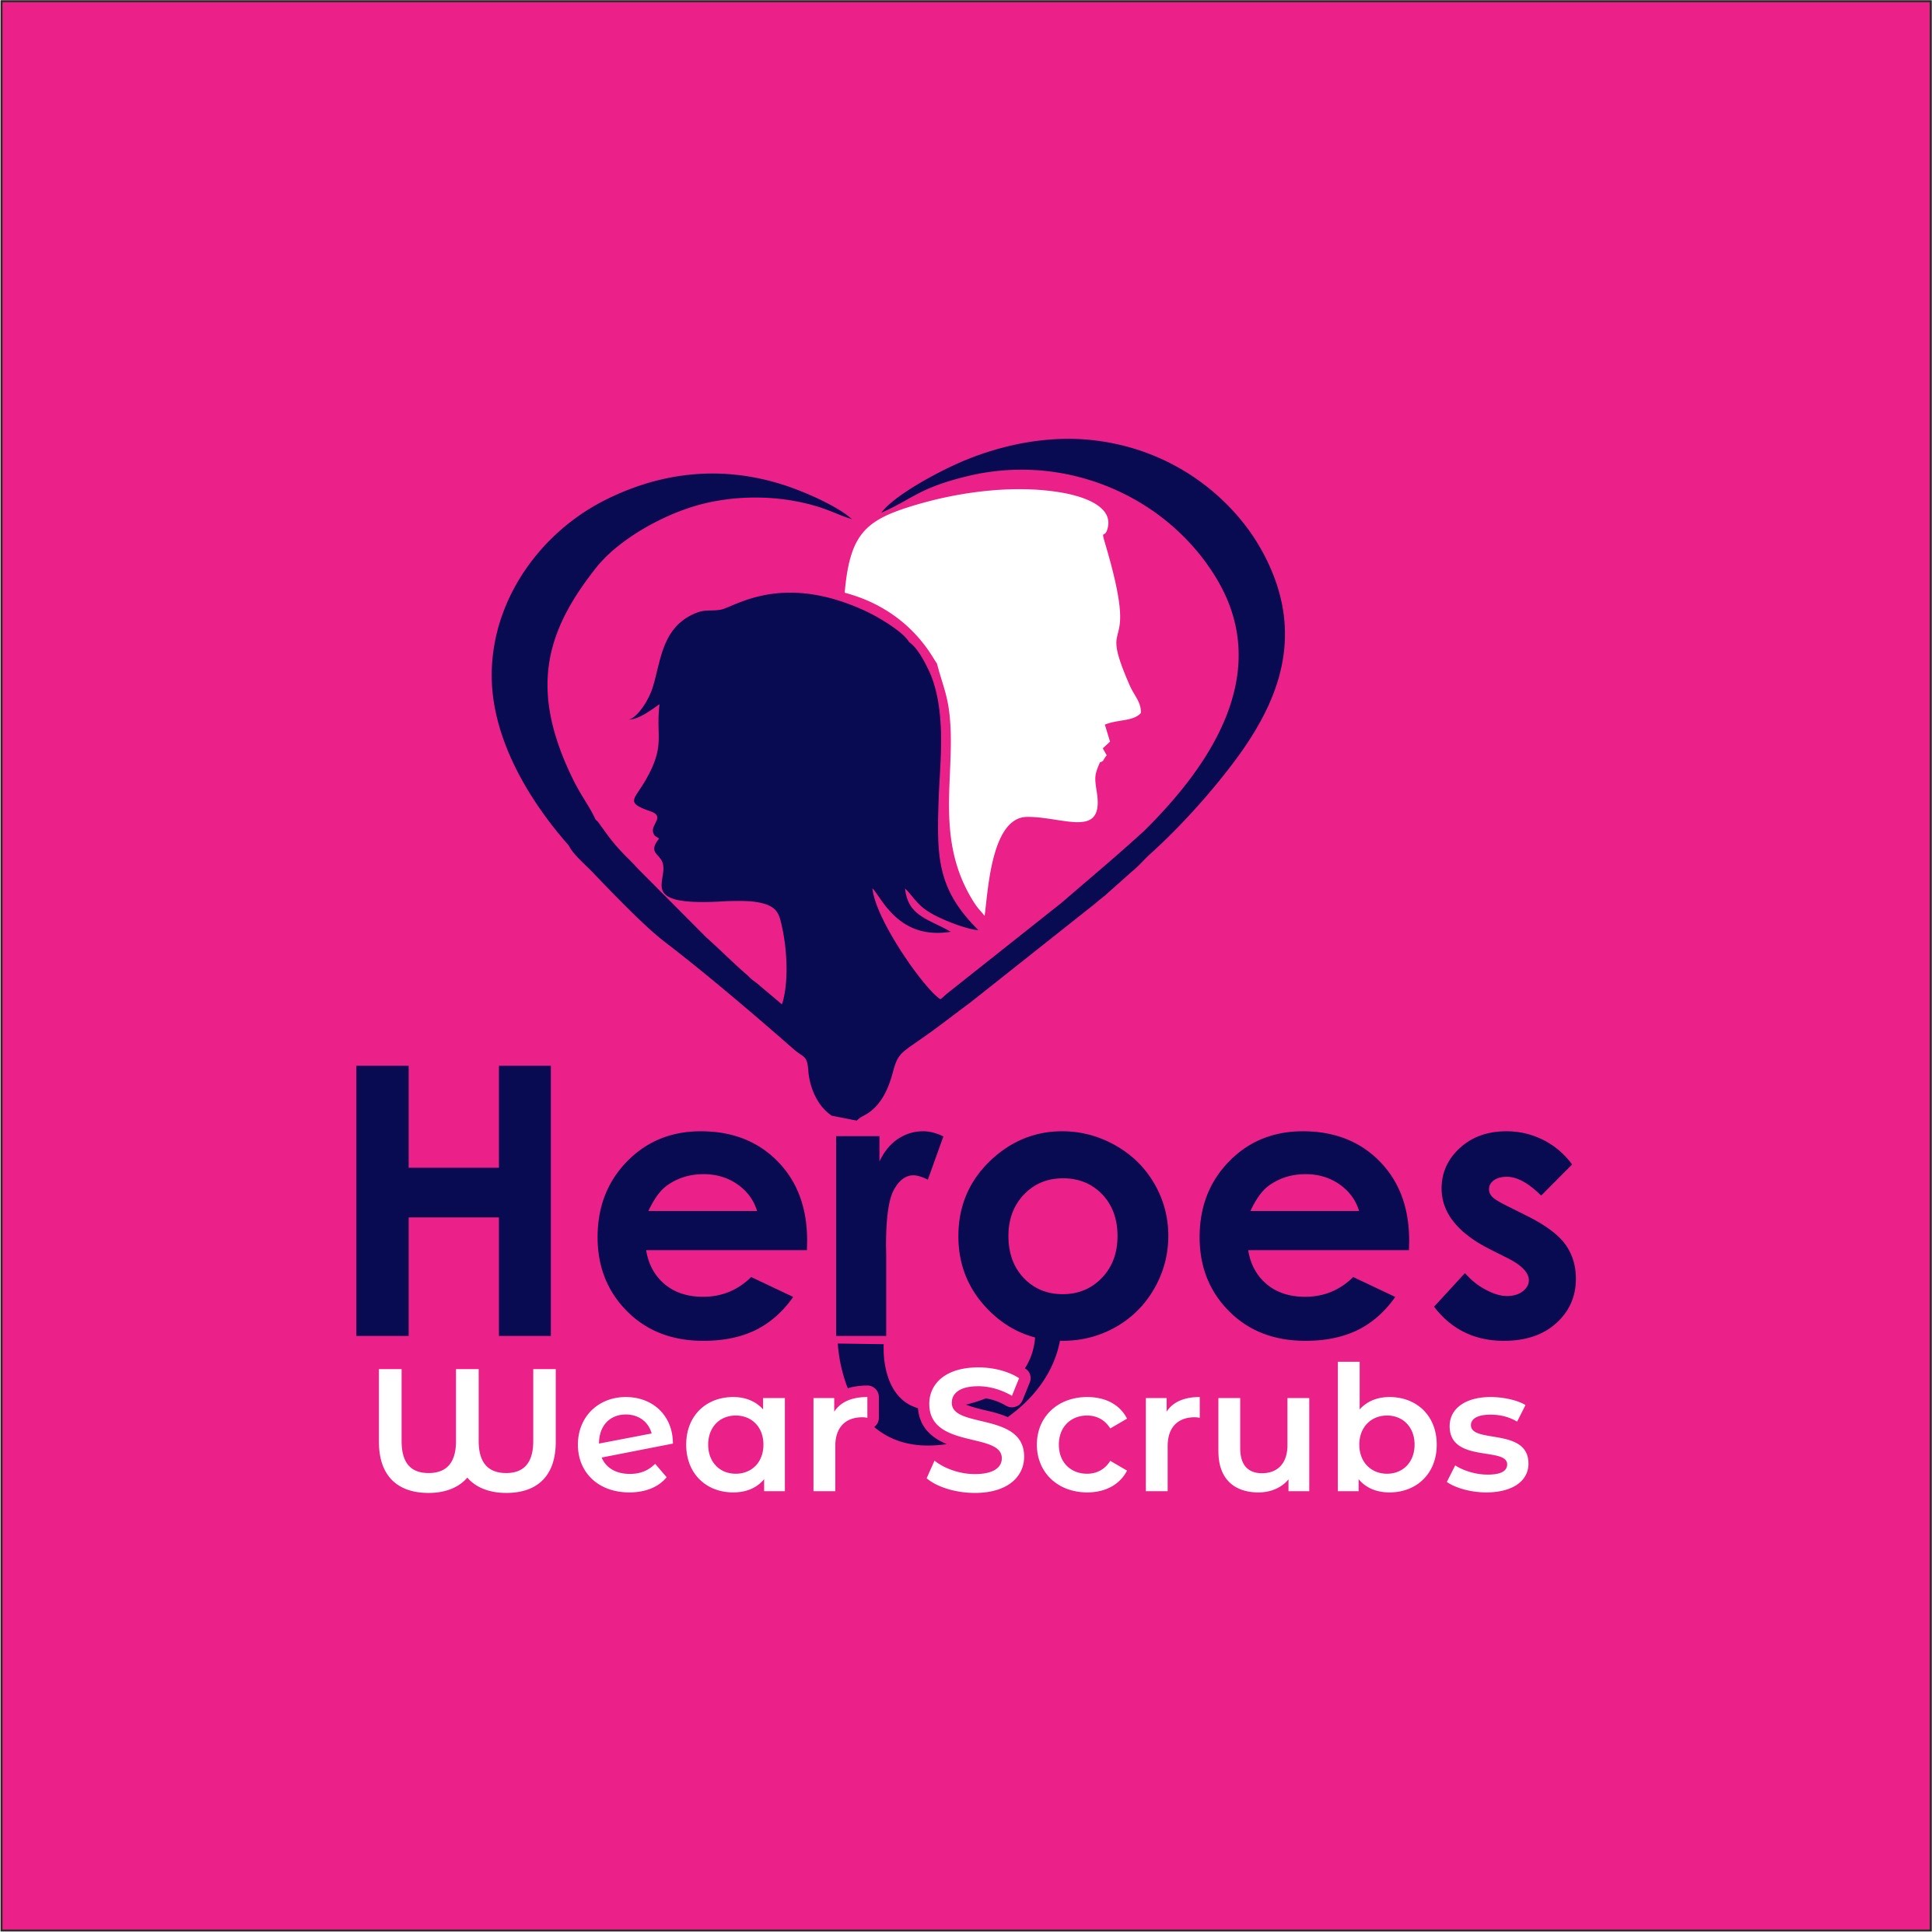 Heroes Wear Scrubs